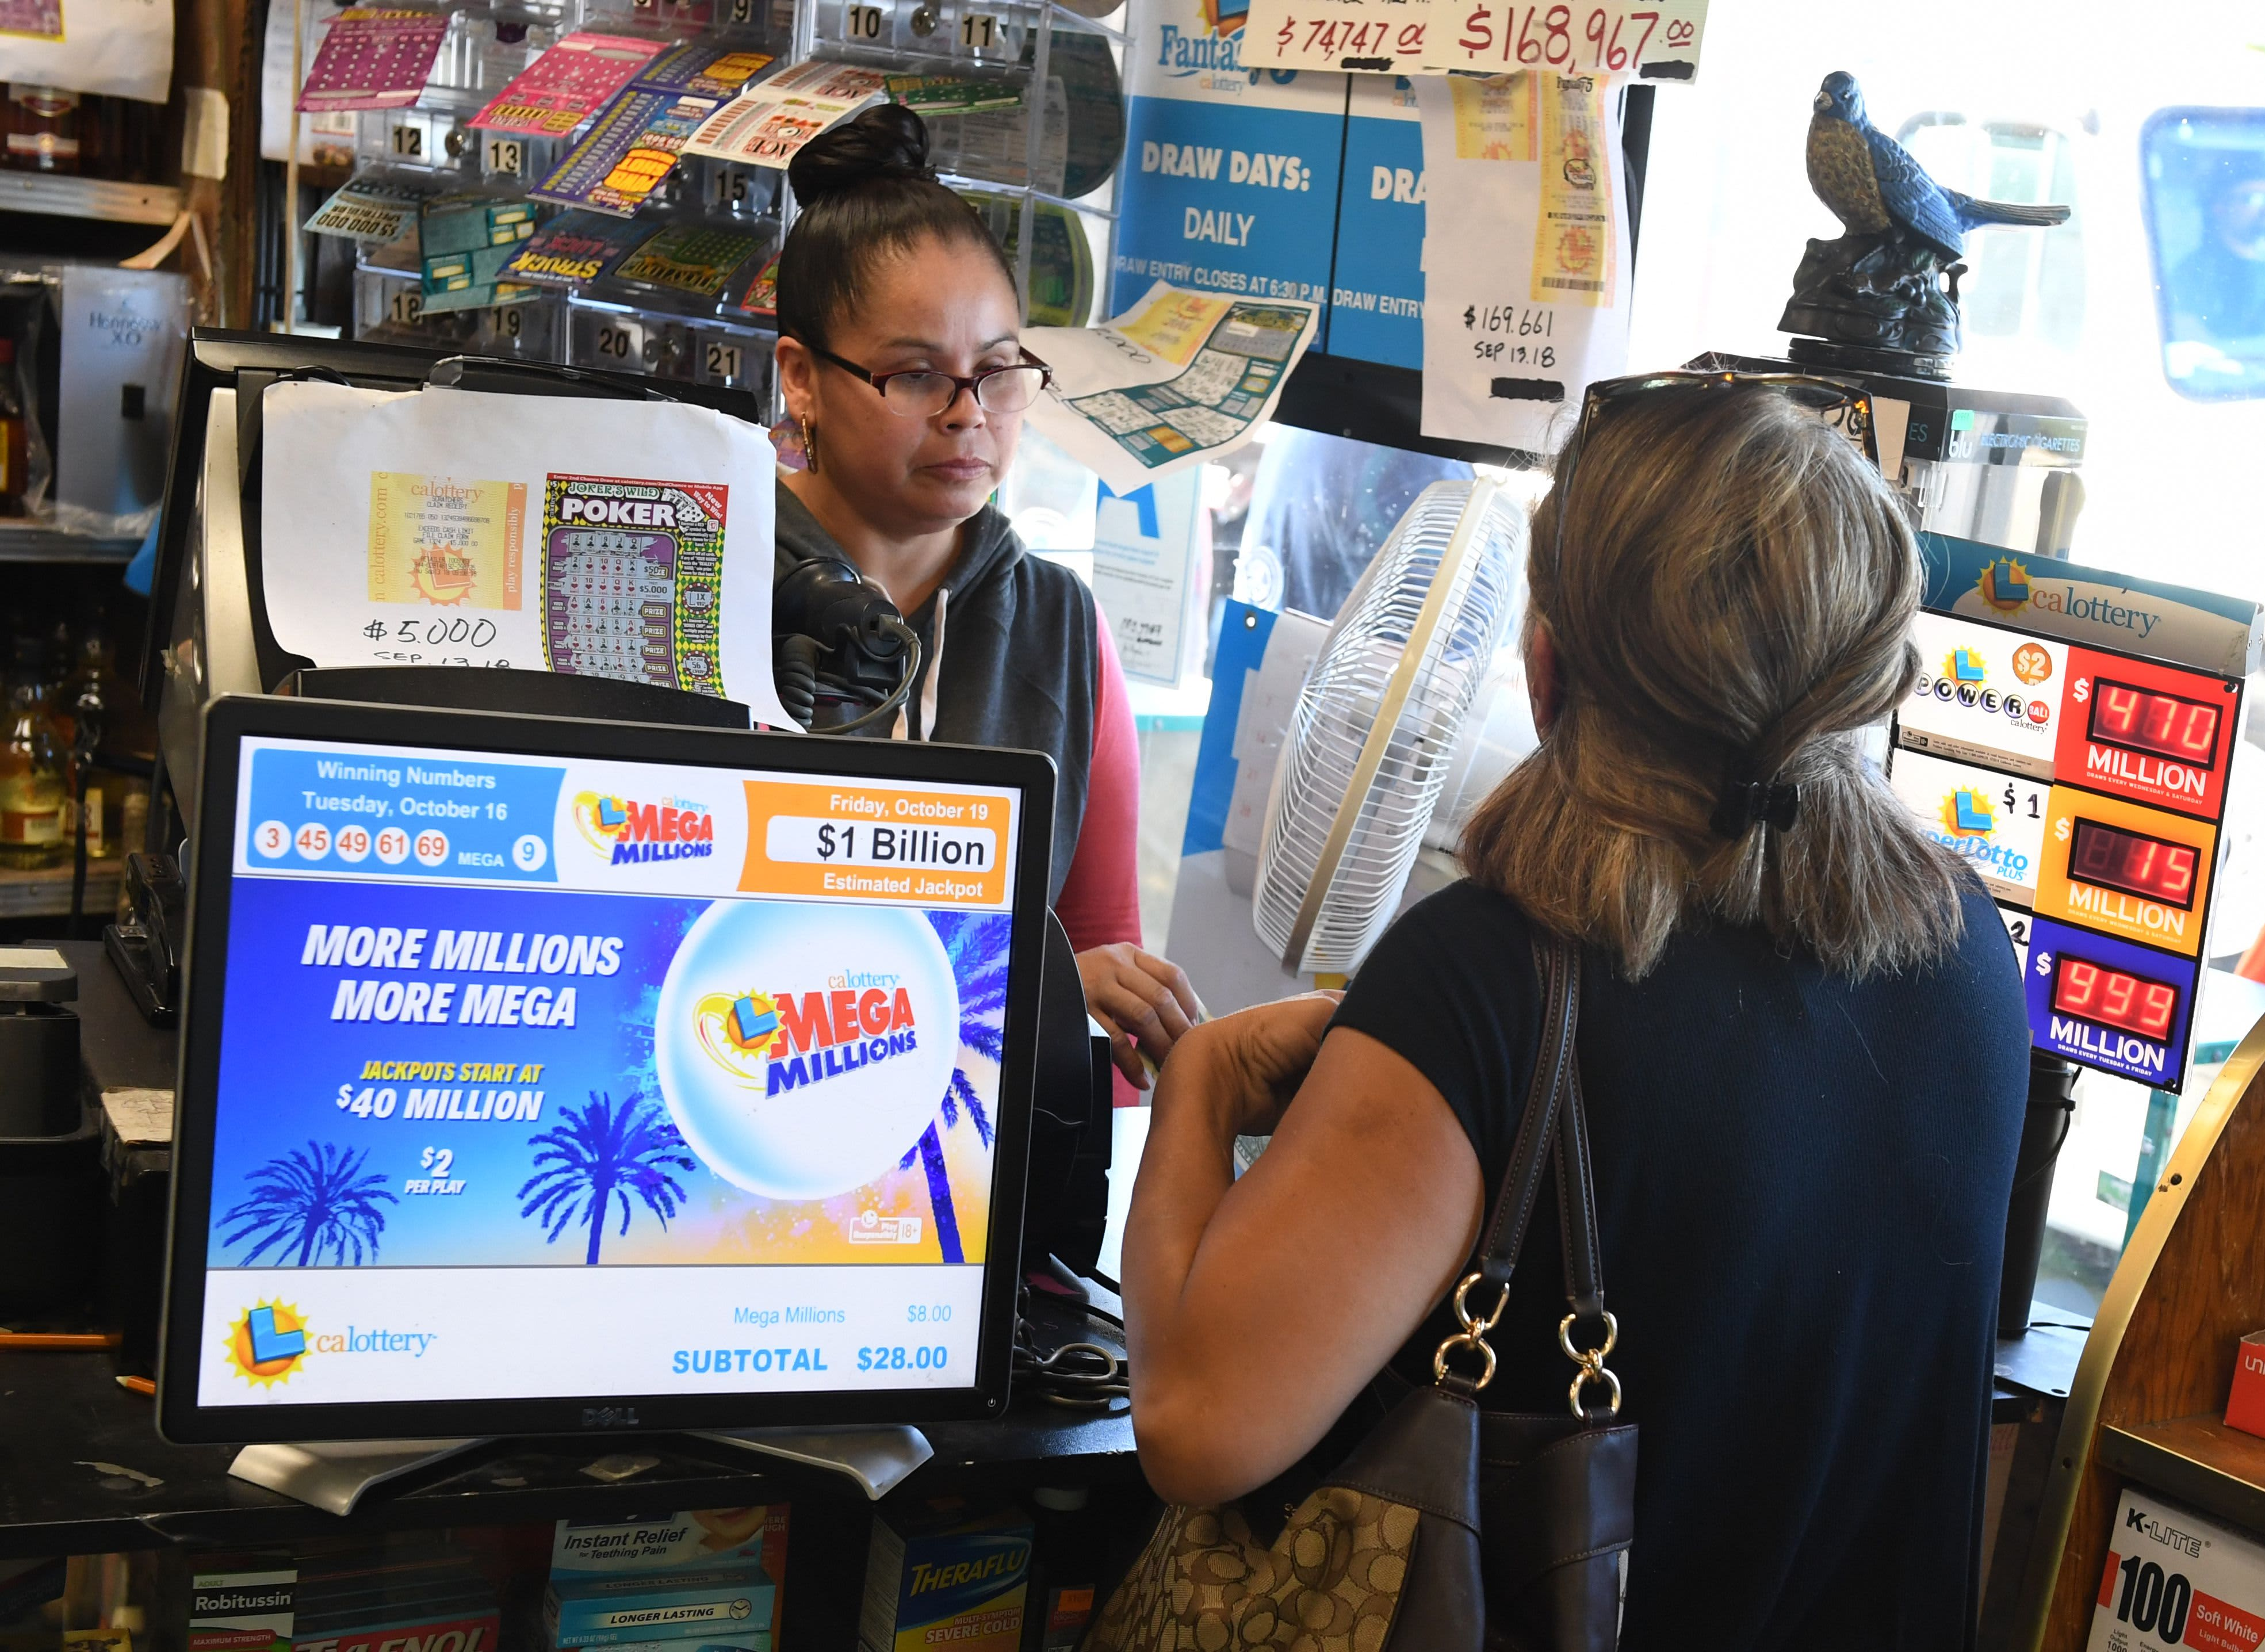 Americans spend over $1,000 a year on lotto tickets